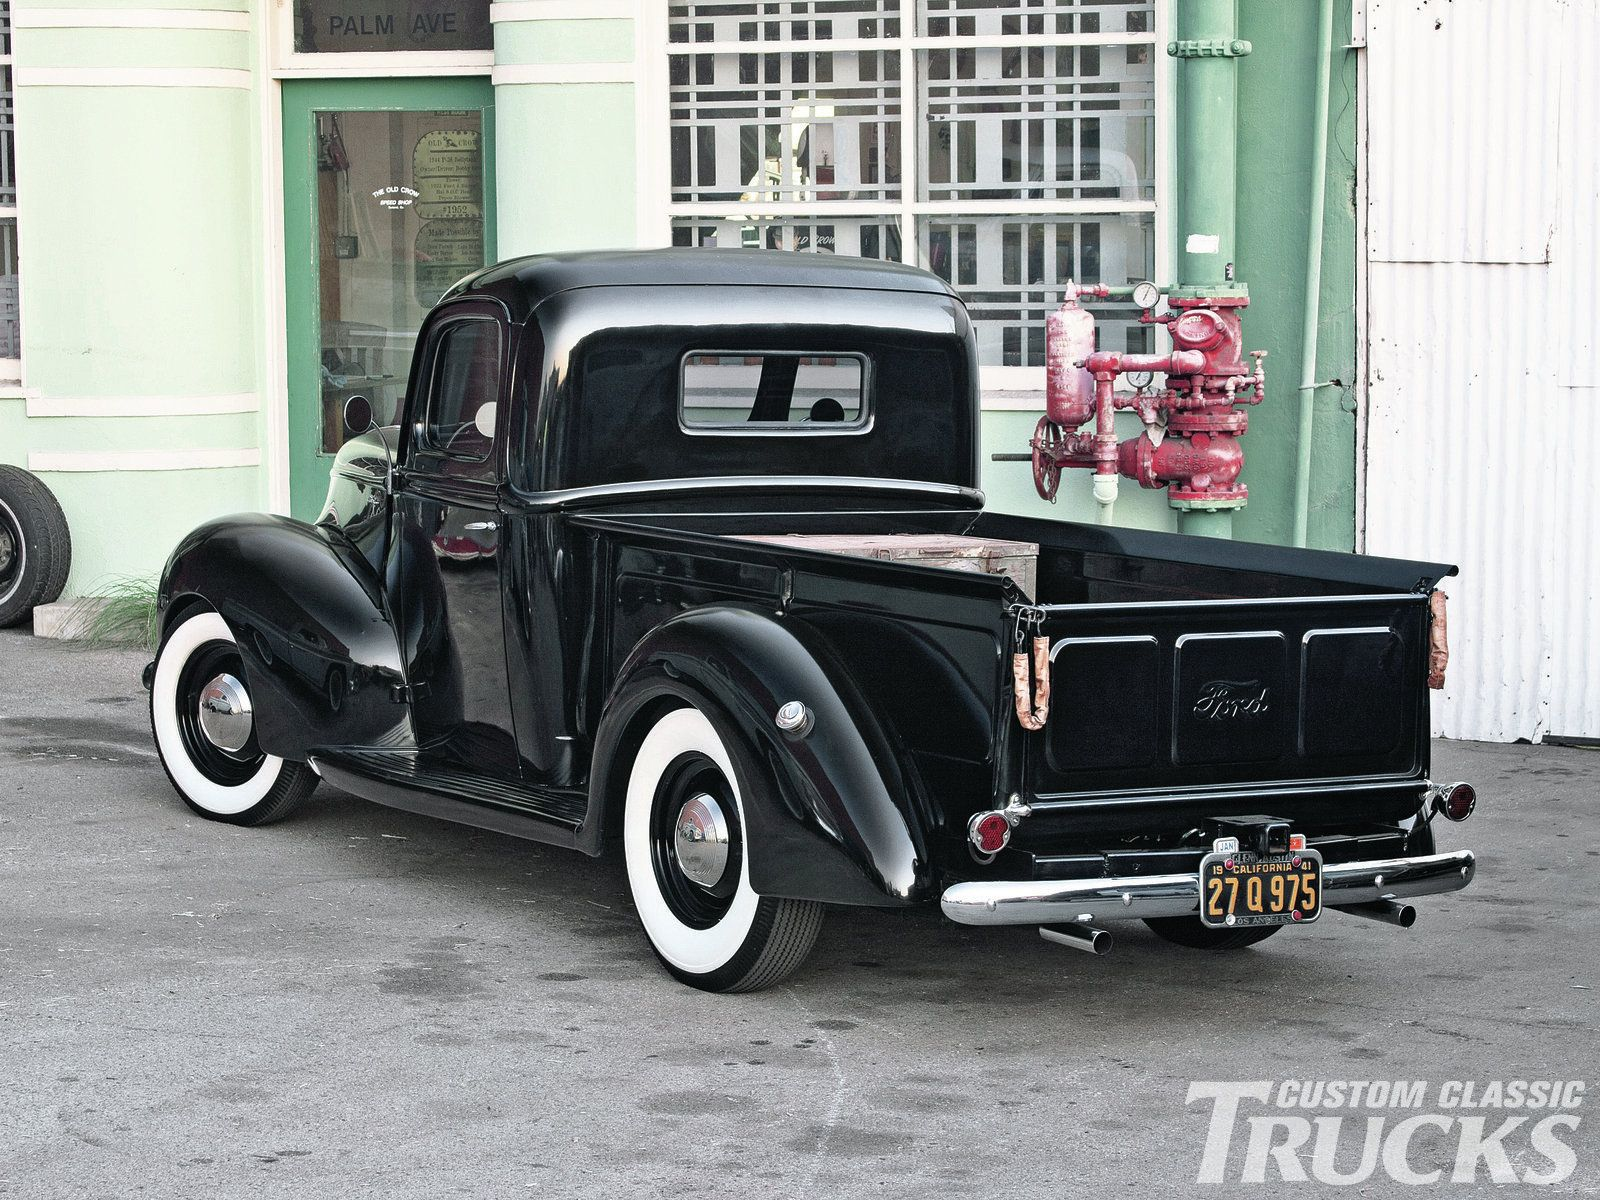 1940 ford truck 1940 ford truck tail gate photo 7 [ 1600 x 1200 Pixel ]